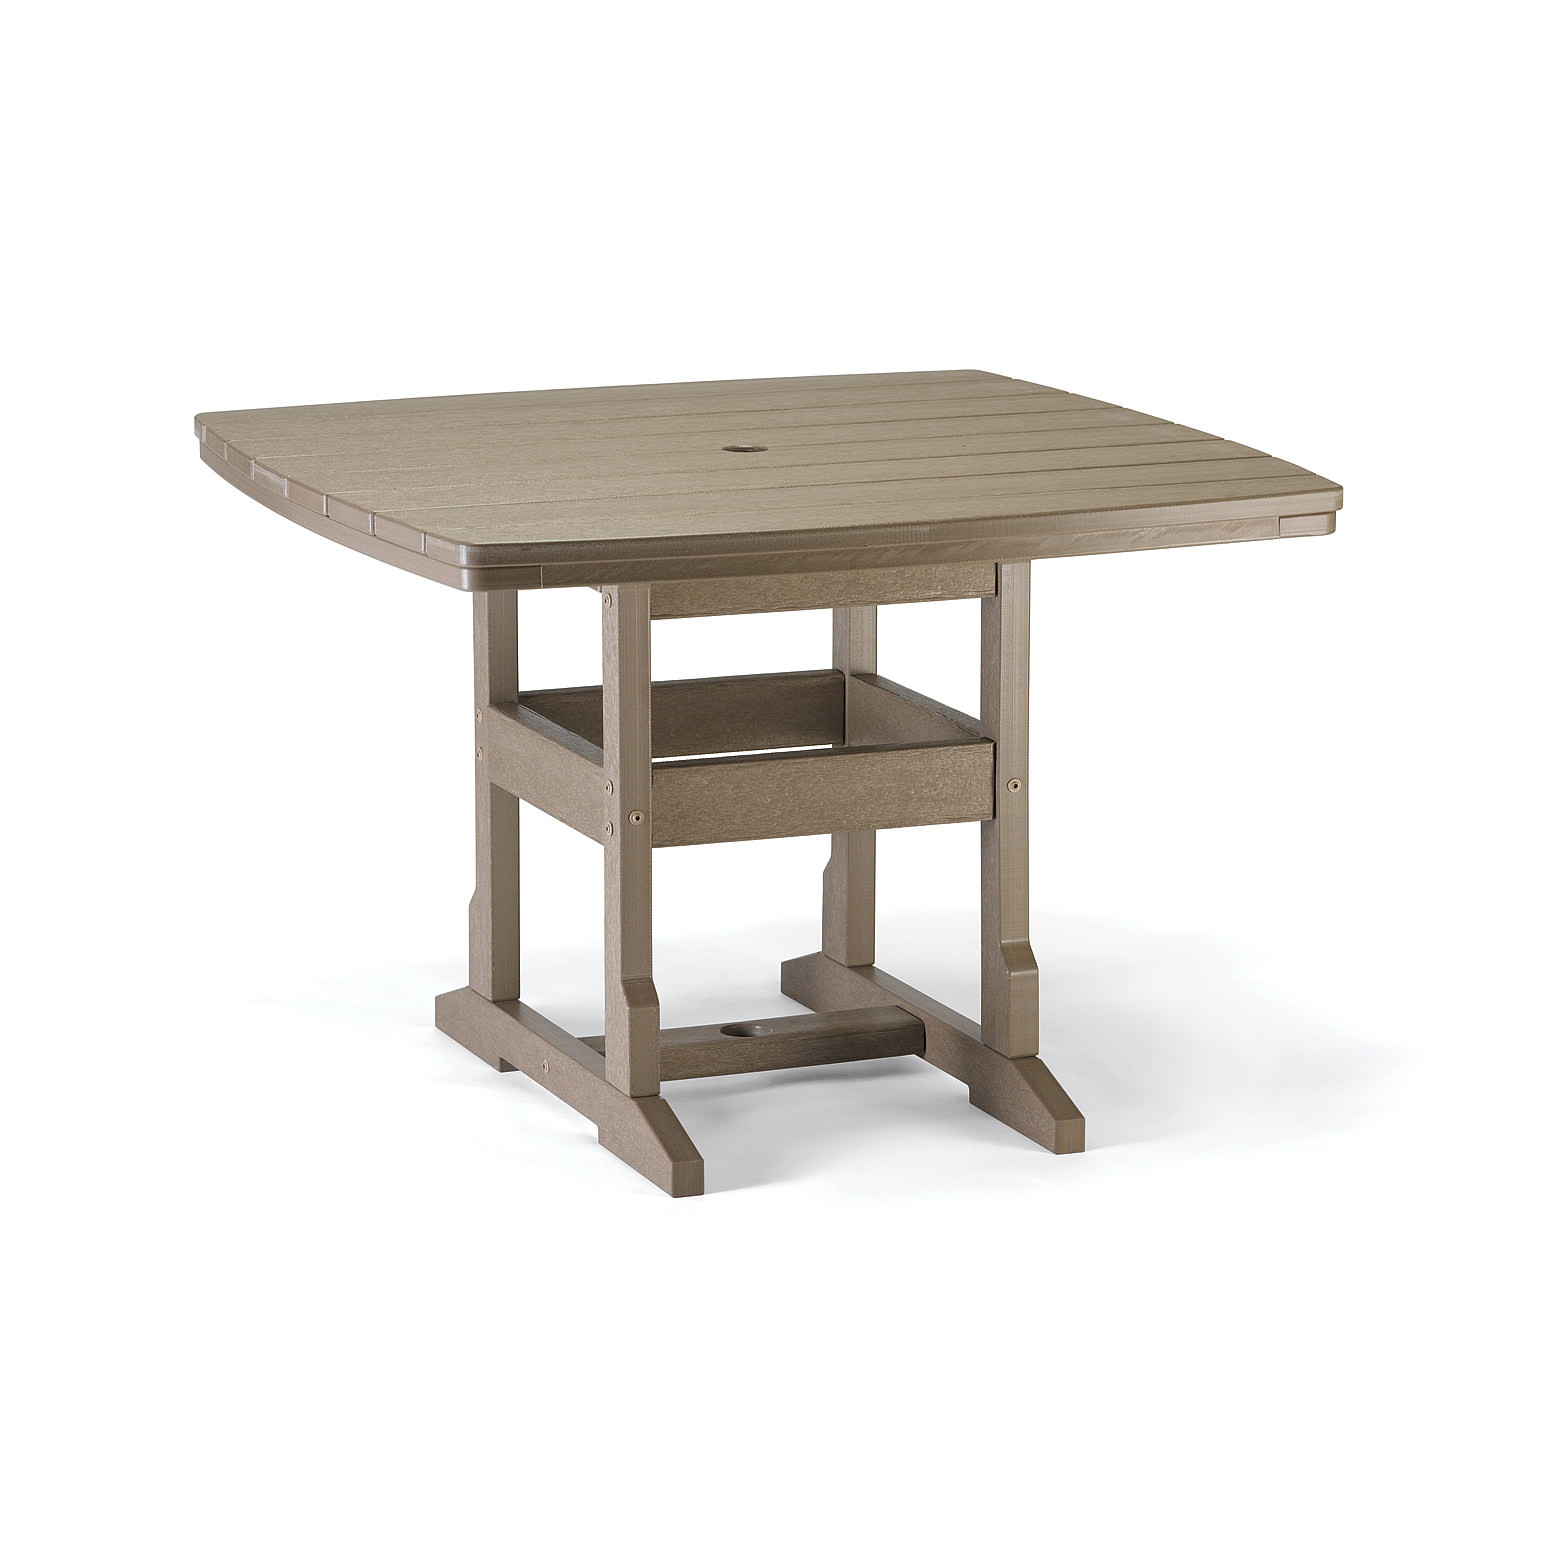 Breezesta™ 42 x 42 Inch Square Dining Table